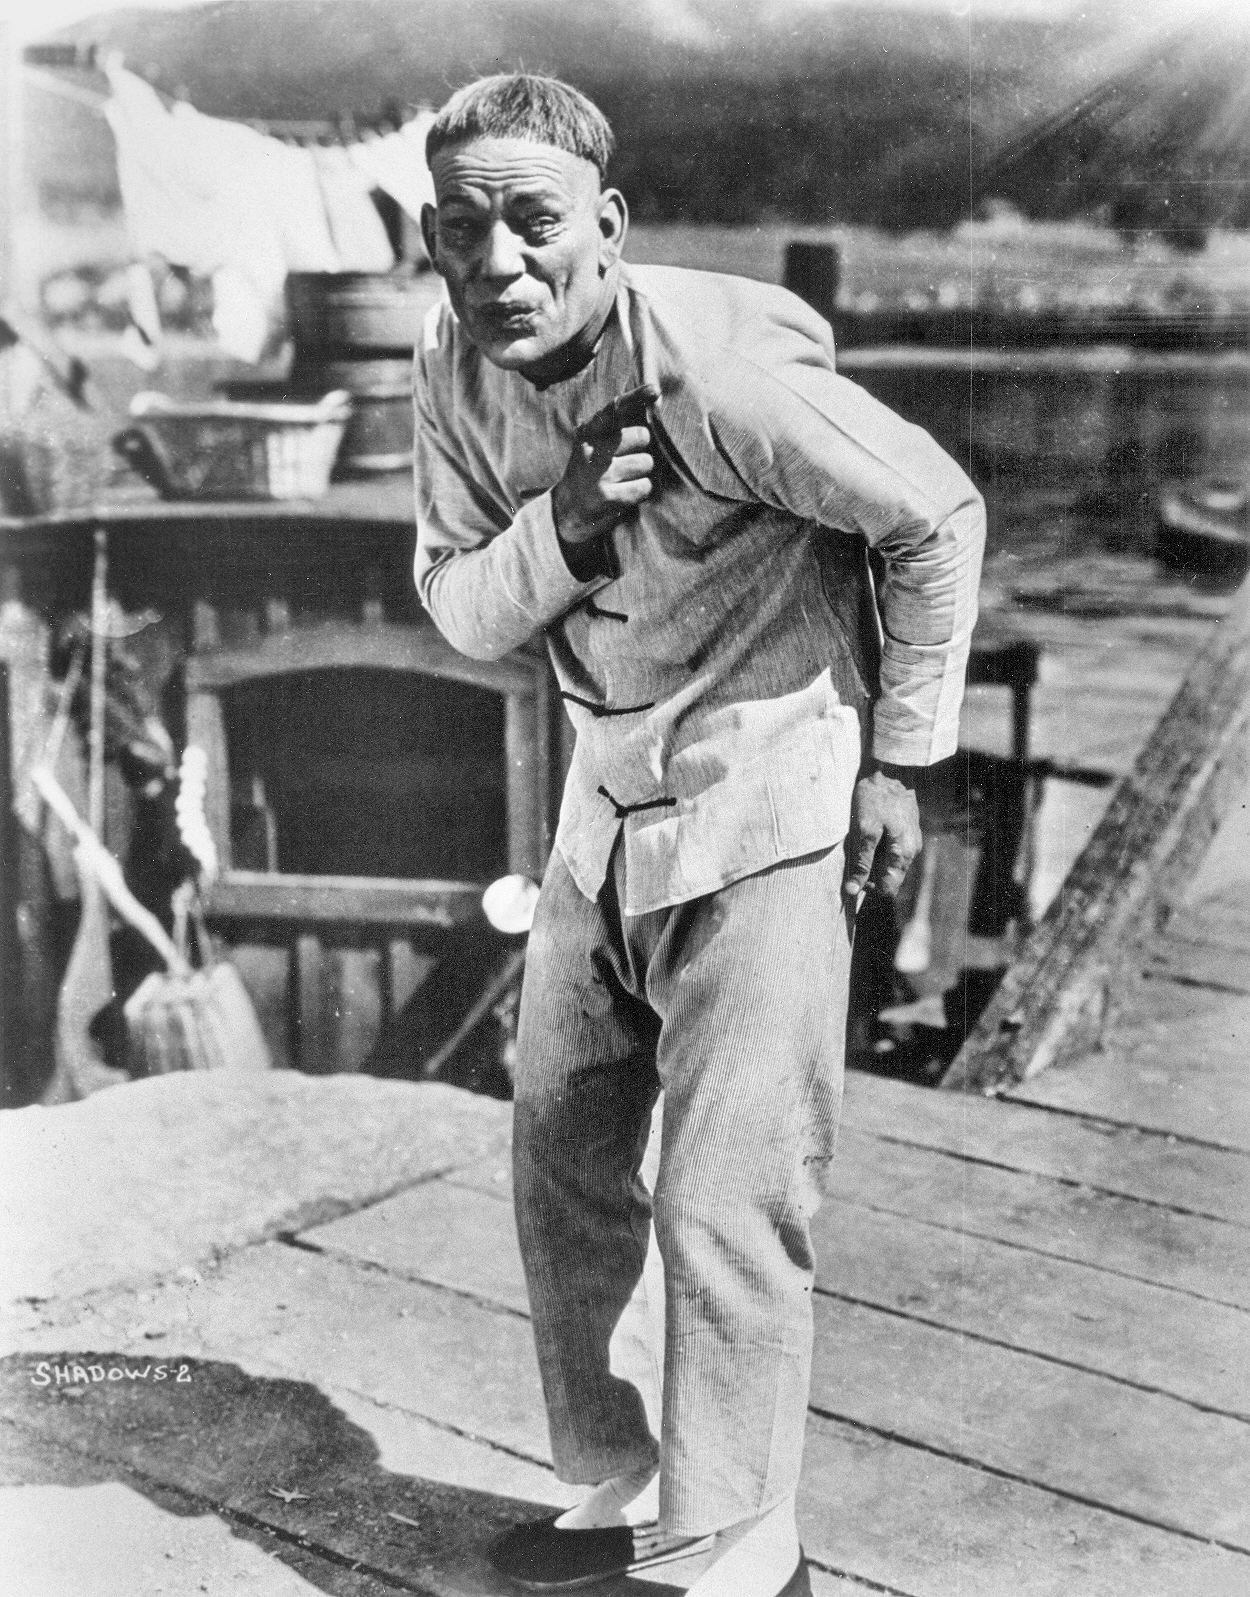 Lon_Chaney_as_Chinese_immigrant_Yen_Sin_in_the_film_Shadows_(1922)